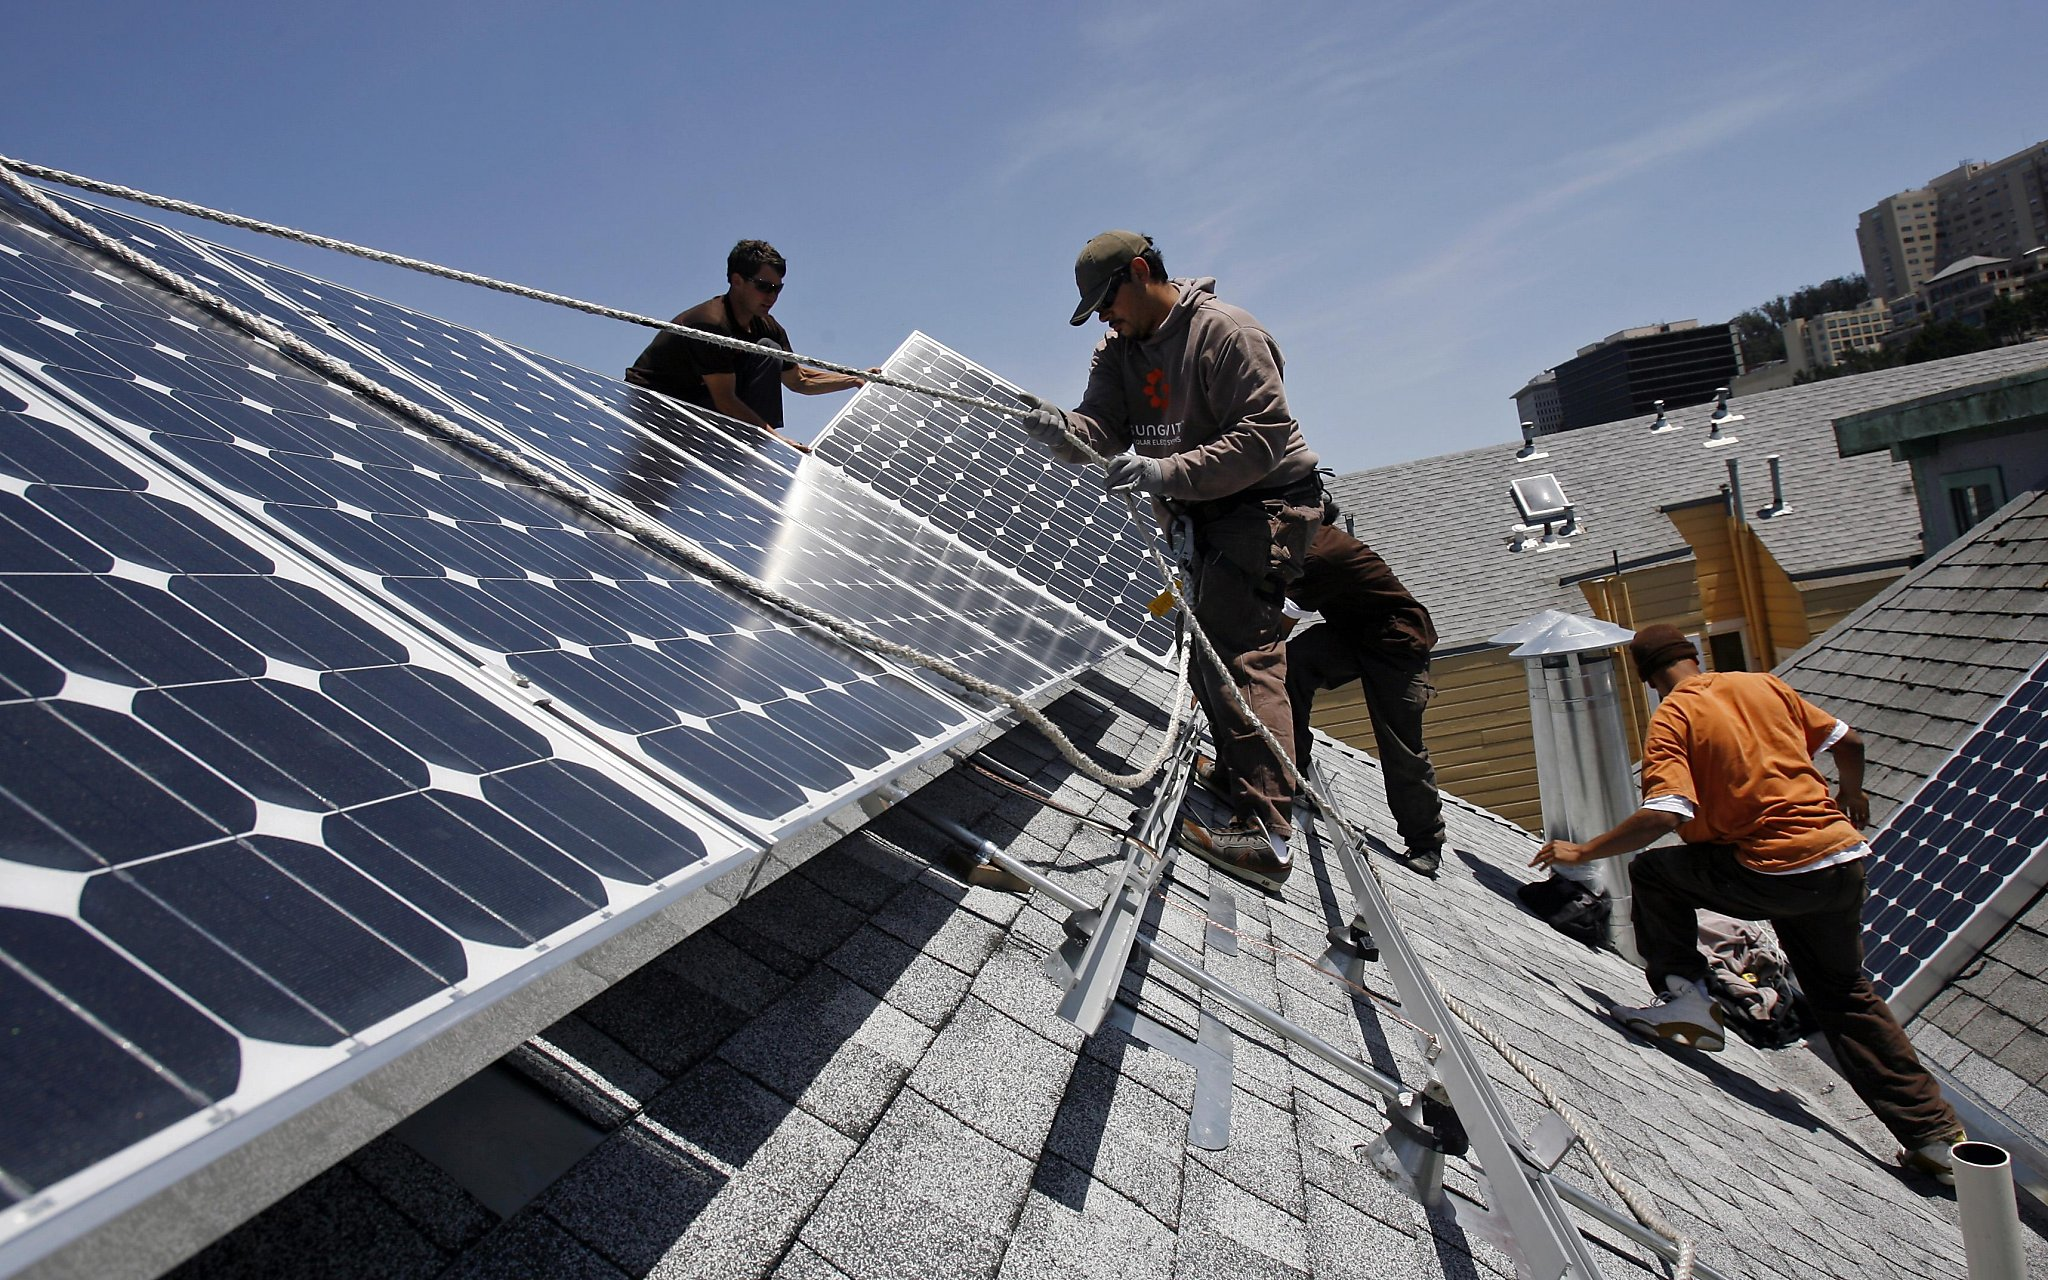 Sungevity S Messy Solar Bankruptcy Leaves Customers On The